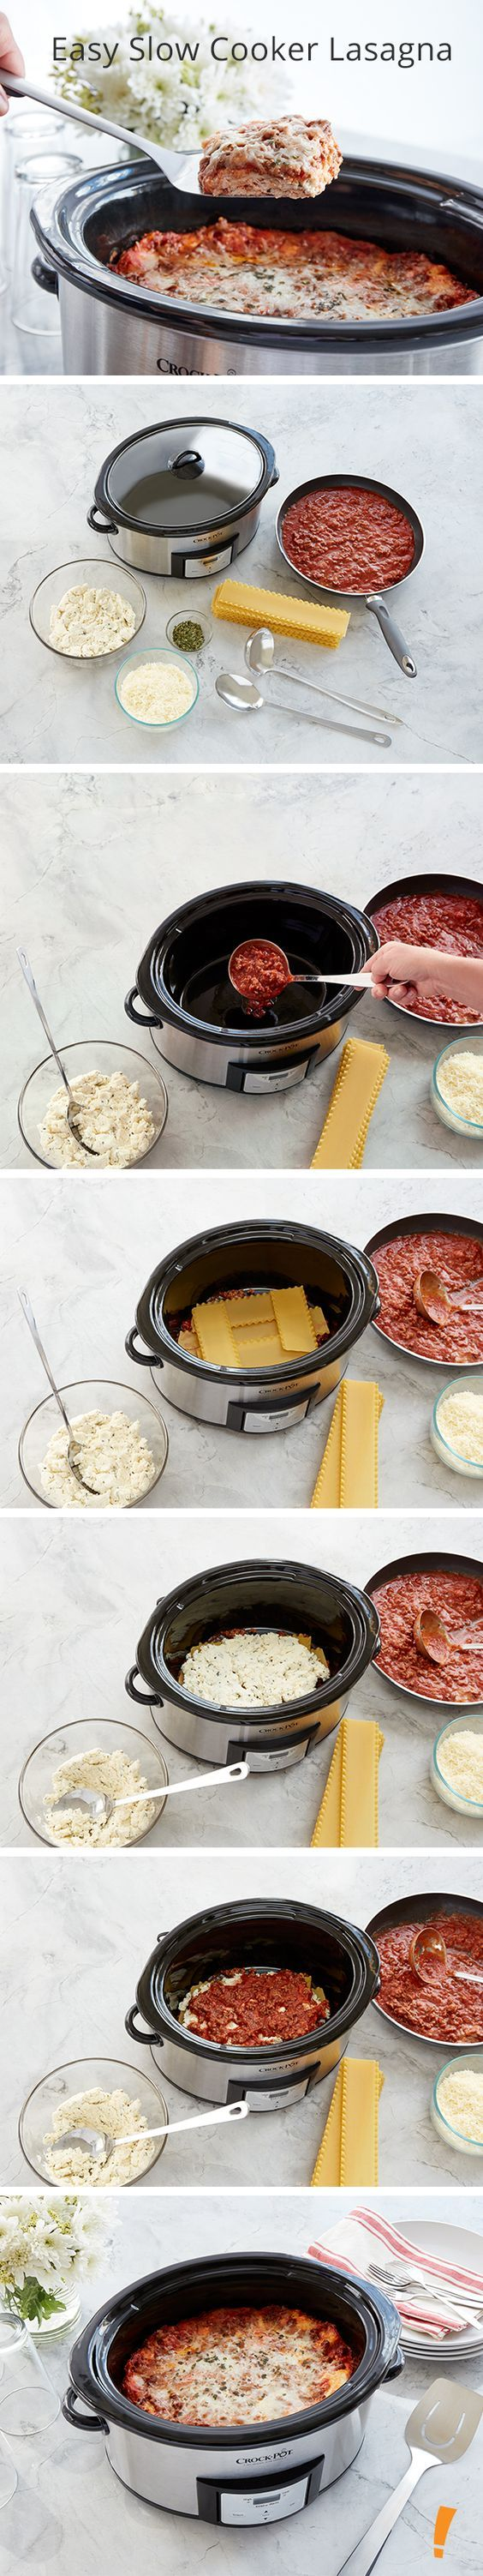 If you like lasagna, then you'll love this slow cooker option!